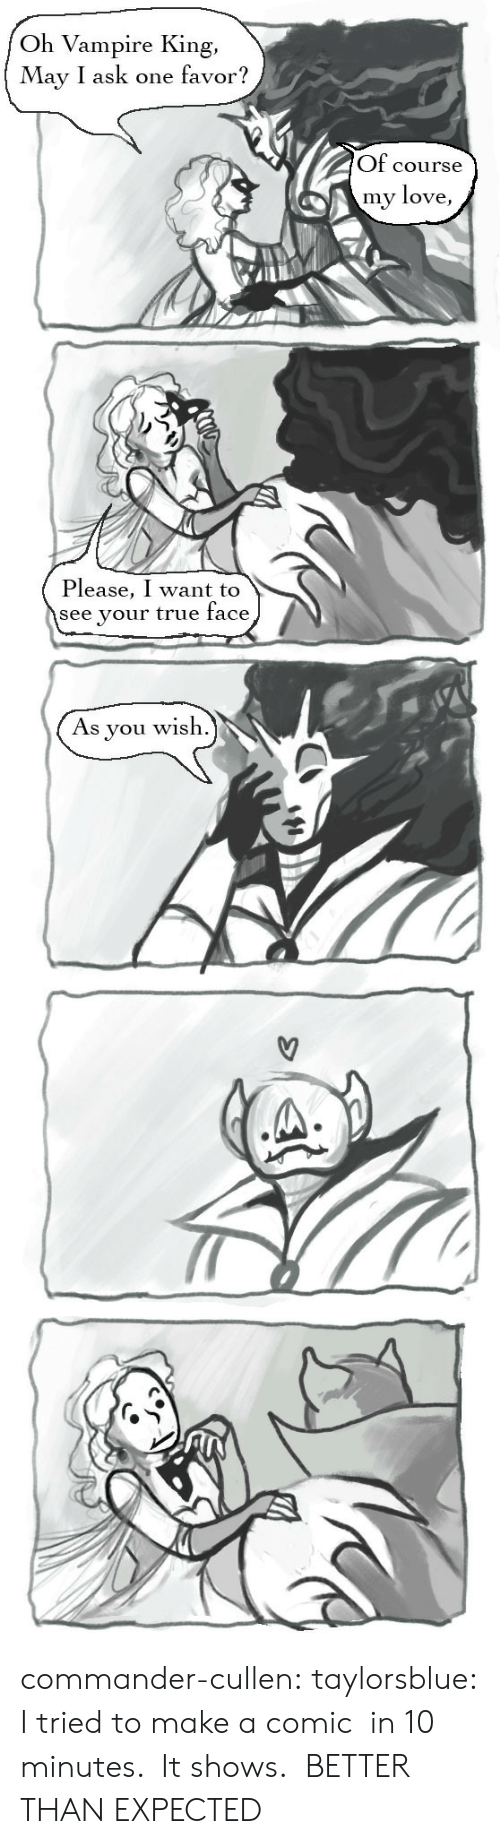 Love, True, and Tumblr: Oh Vampire King  May I ask one favor?  Of course  my love,  Please, I want to  see your true face  wish  As  you commander-cullen: taylorsblue:  I tried to make a comic in 10 minutes. It shows.  BETTER THAN EXPECTED